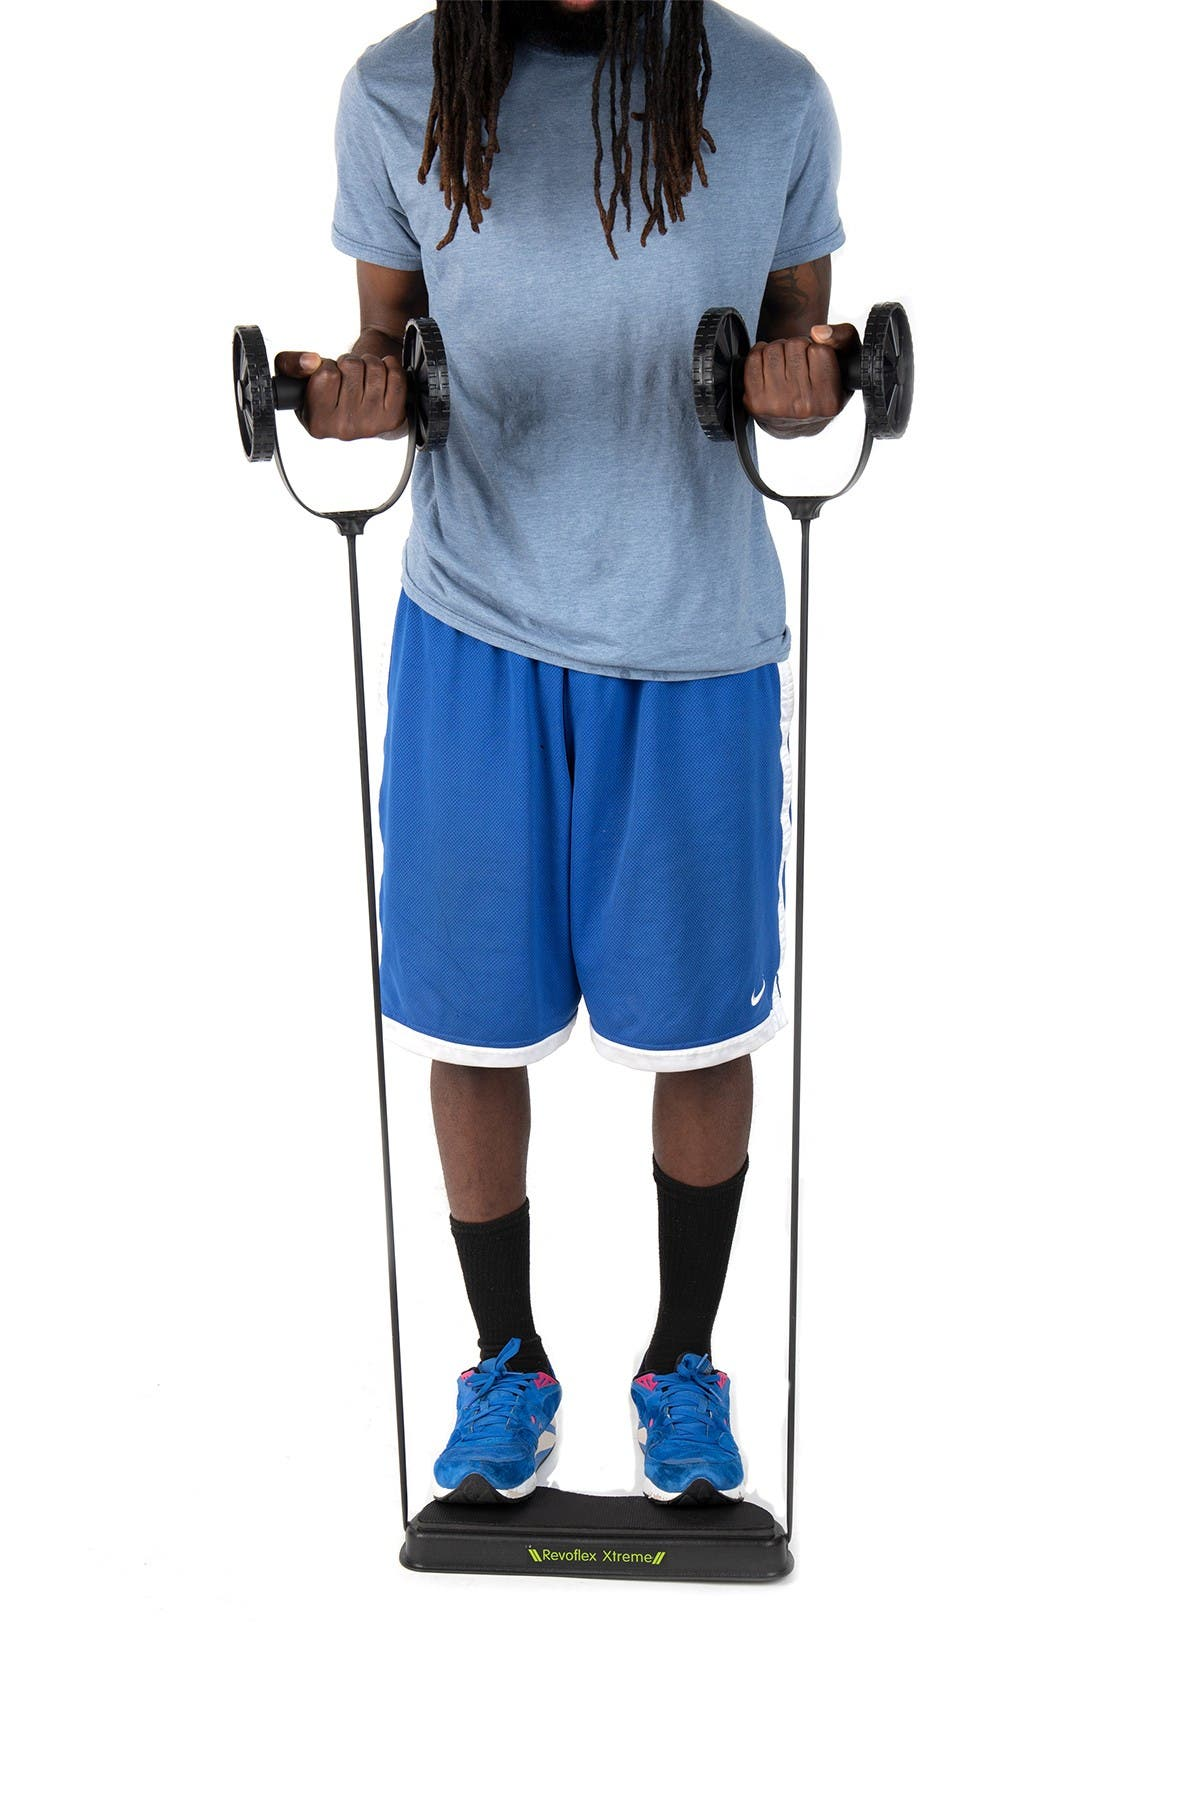 Image of MIND READER Ab Core Muscle Roller Wheel